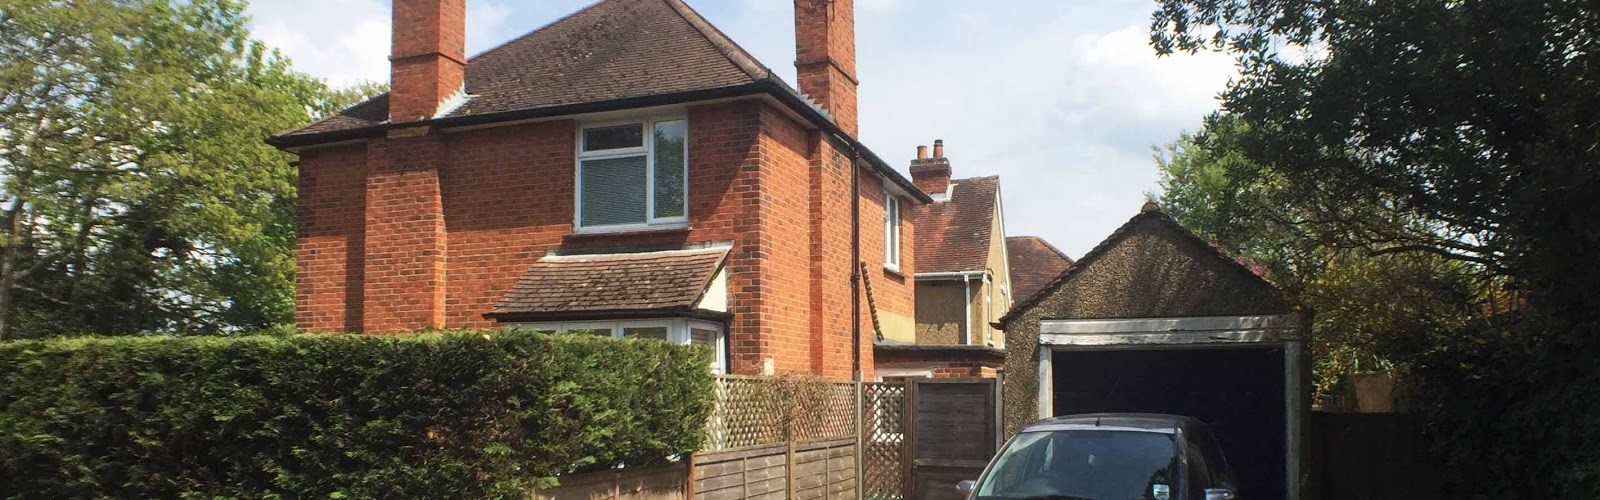 single storey extension of a detached family house